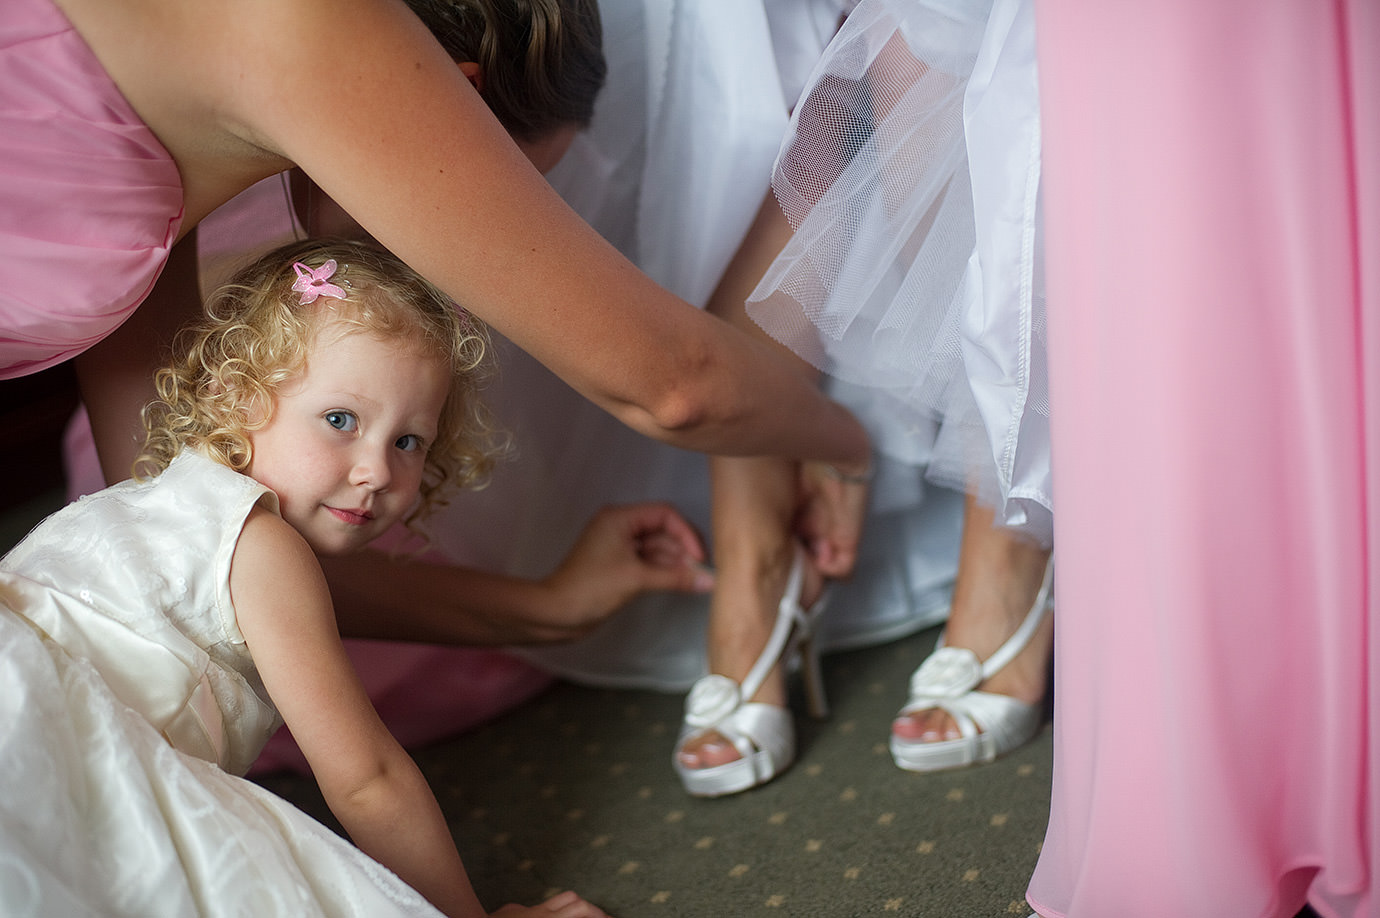 halifax_wedding_photographers_Jeff_Cooke_32